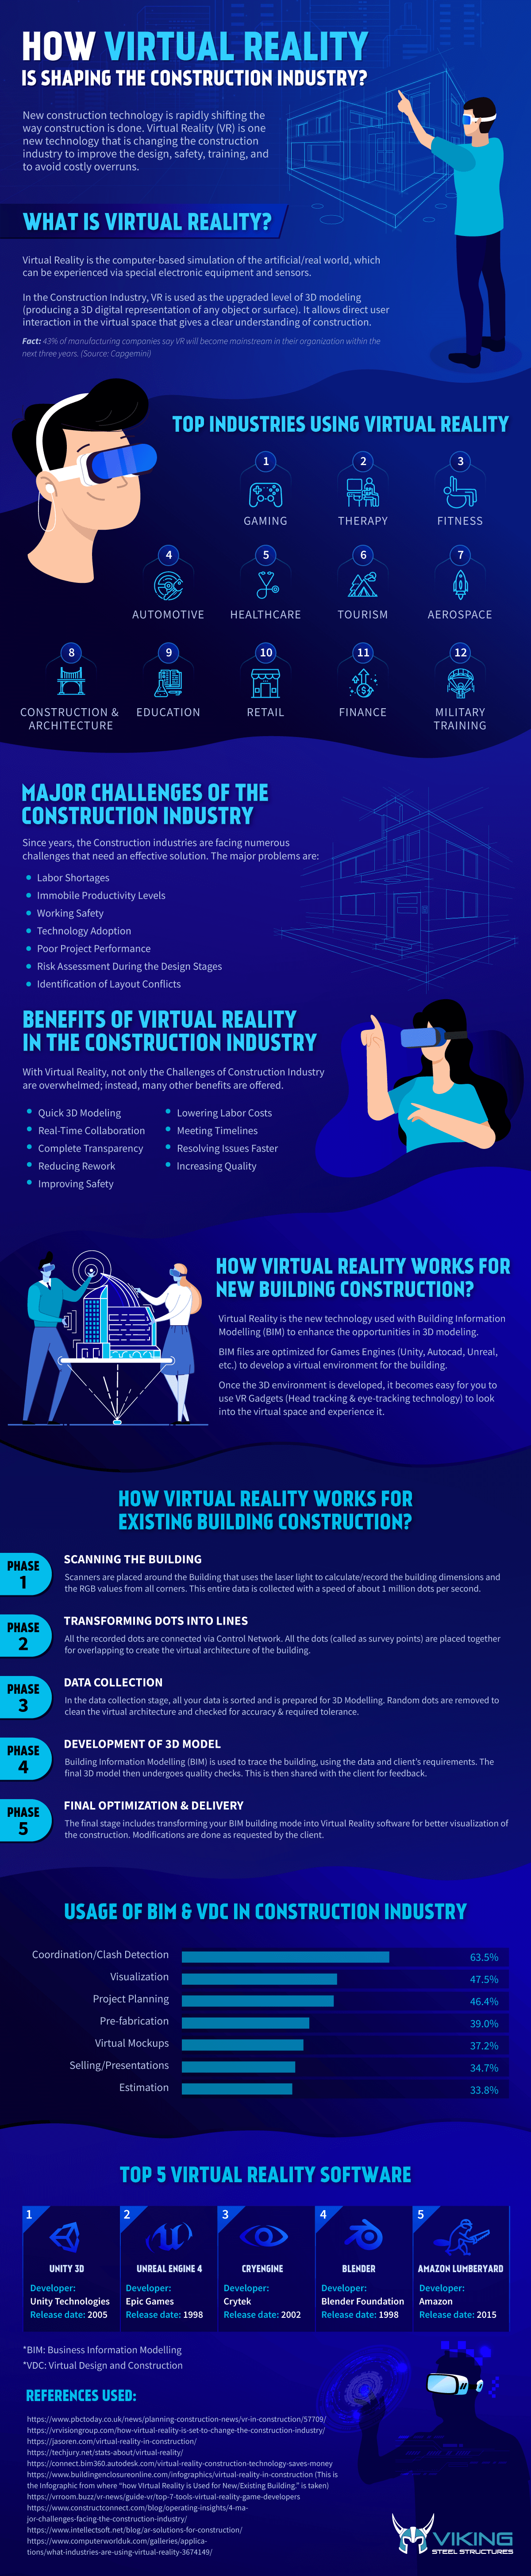 How New Digital Technology is Transforming and Reshaping the Construction Industry - Infographic